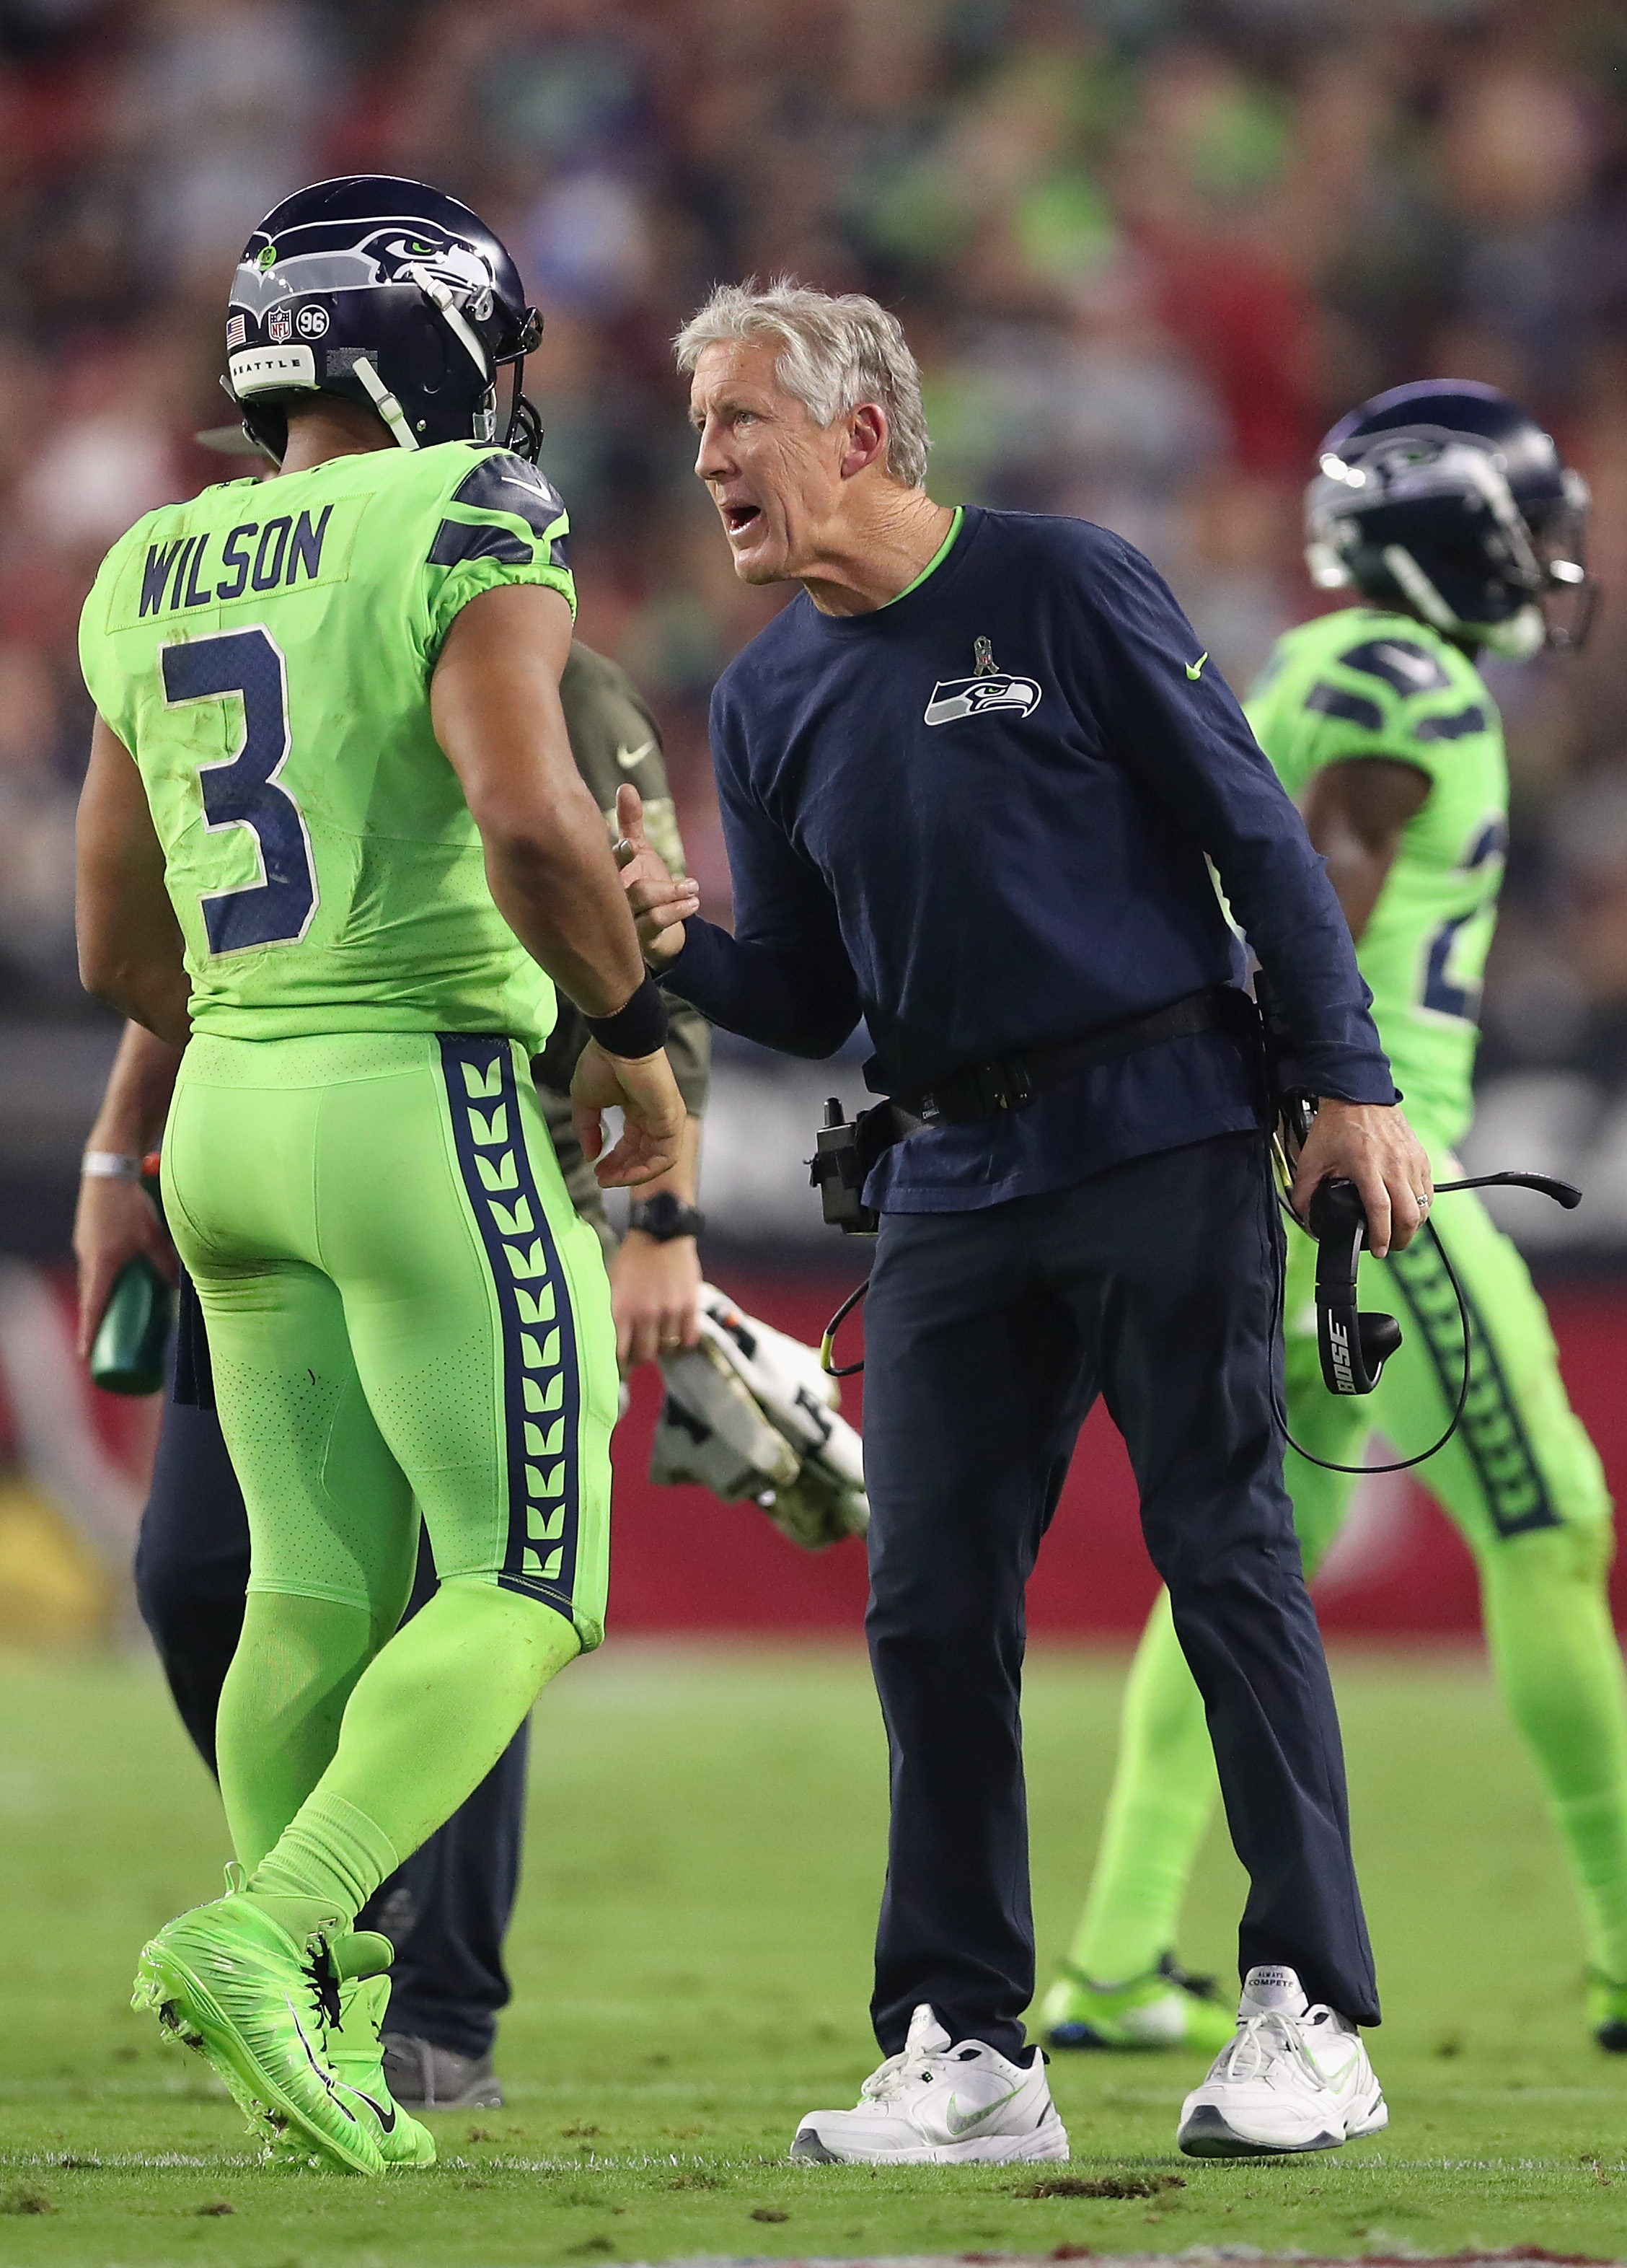 GLENDALE, AZ - NOVEMBER 09:  Head coach Pete Carroll of the Seattle Seahawks talks with quarterback Russell Wilson #3 during the first half of the NFL game against the Arizona Cardinals at the University of Phoenix Stadium on November 9, 2017 in Glendale, Arizona.  (Photo by Christian Petersen/Getty Images)